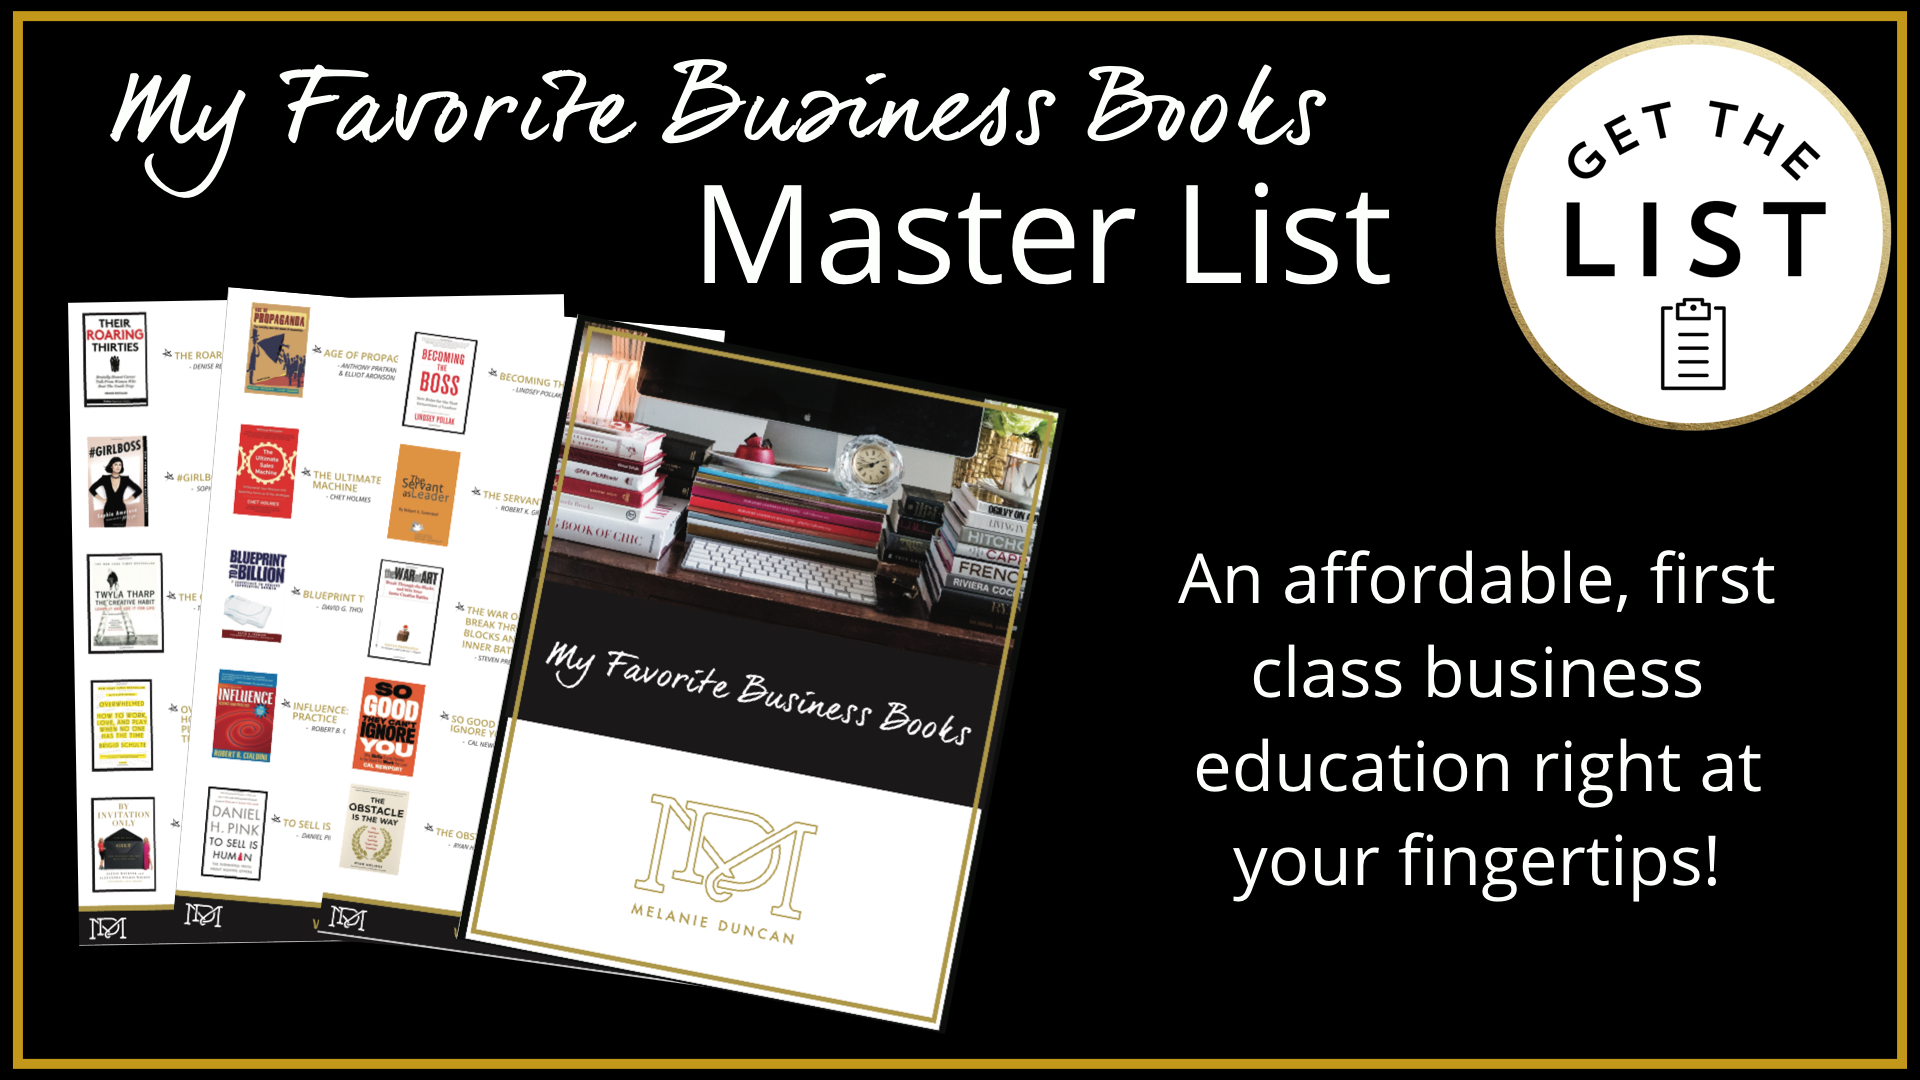 My top 5 favorite business books to skyrocket your success how many of your faves ended up on my list download my master list of business books and see which ones youve checked off and which you need to add to malvernweather Choice Image